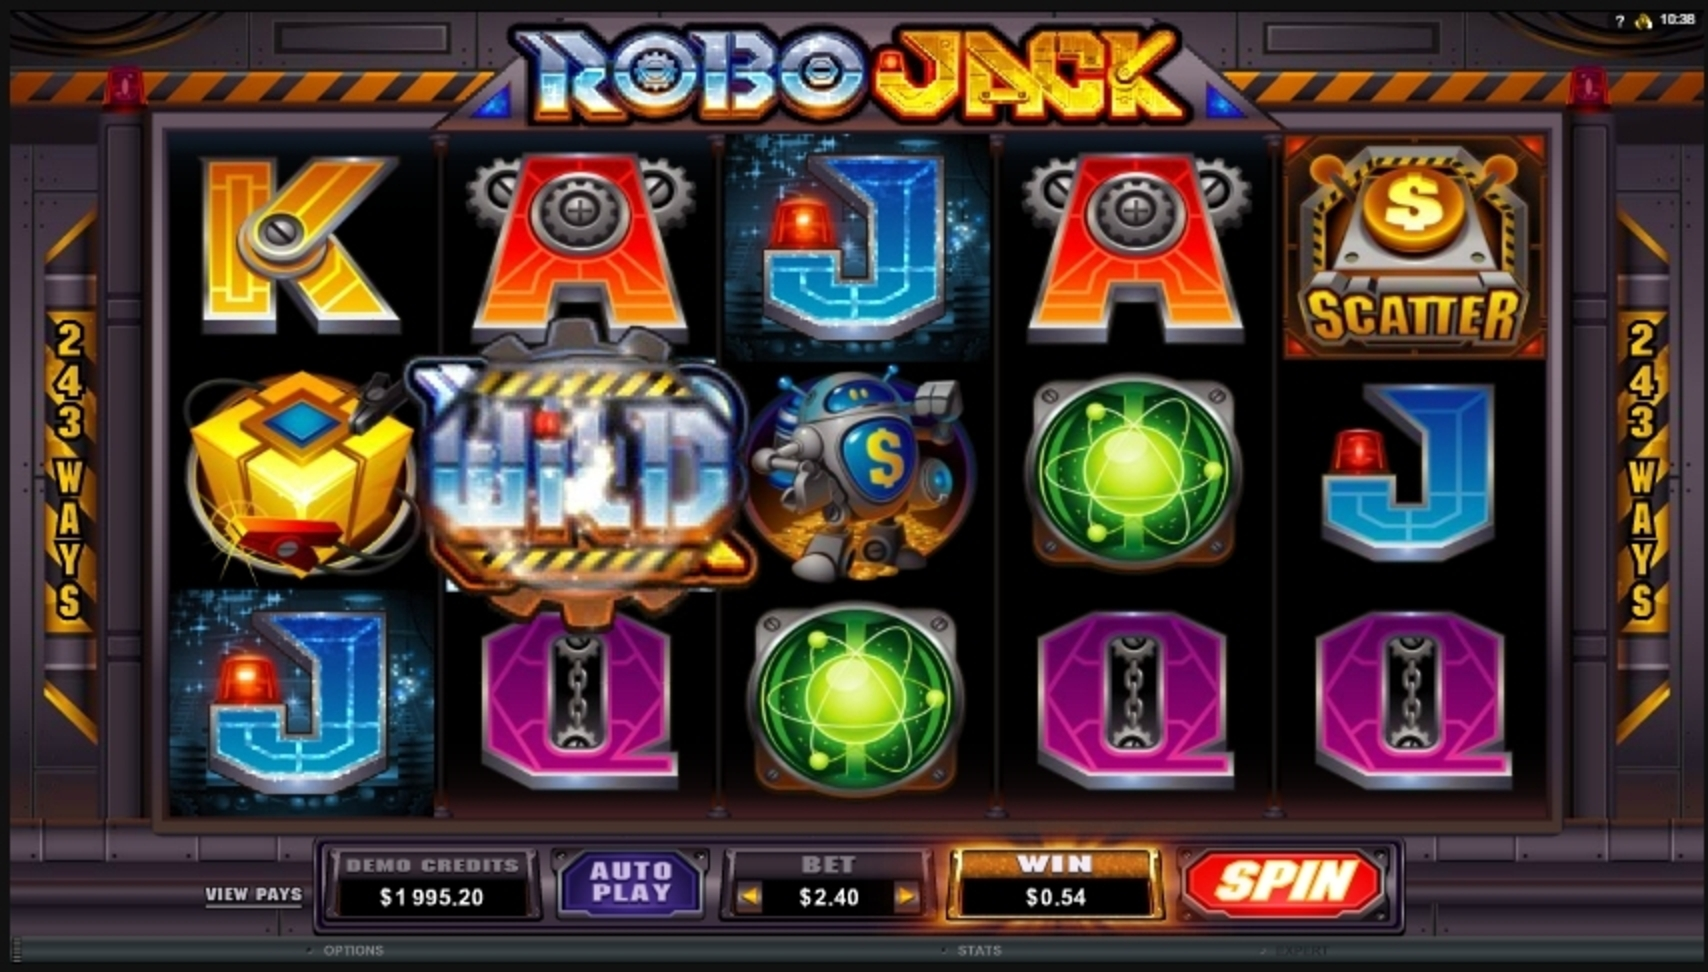 Win Money in Robo Jack Free Slot Game by Microgaming